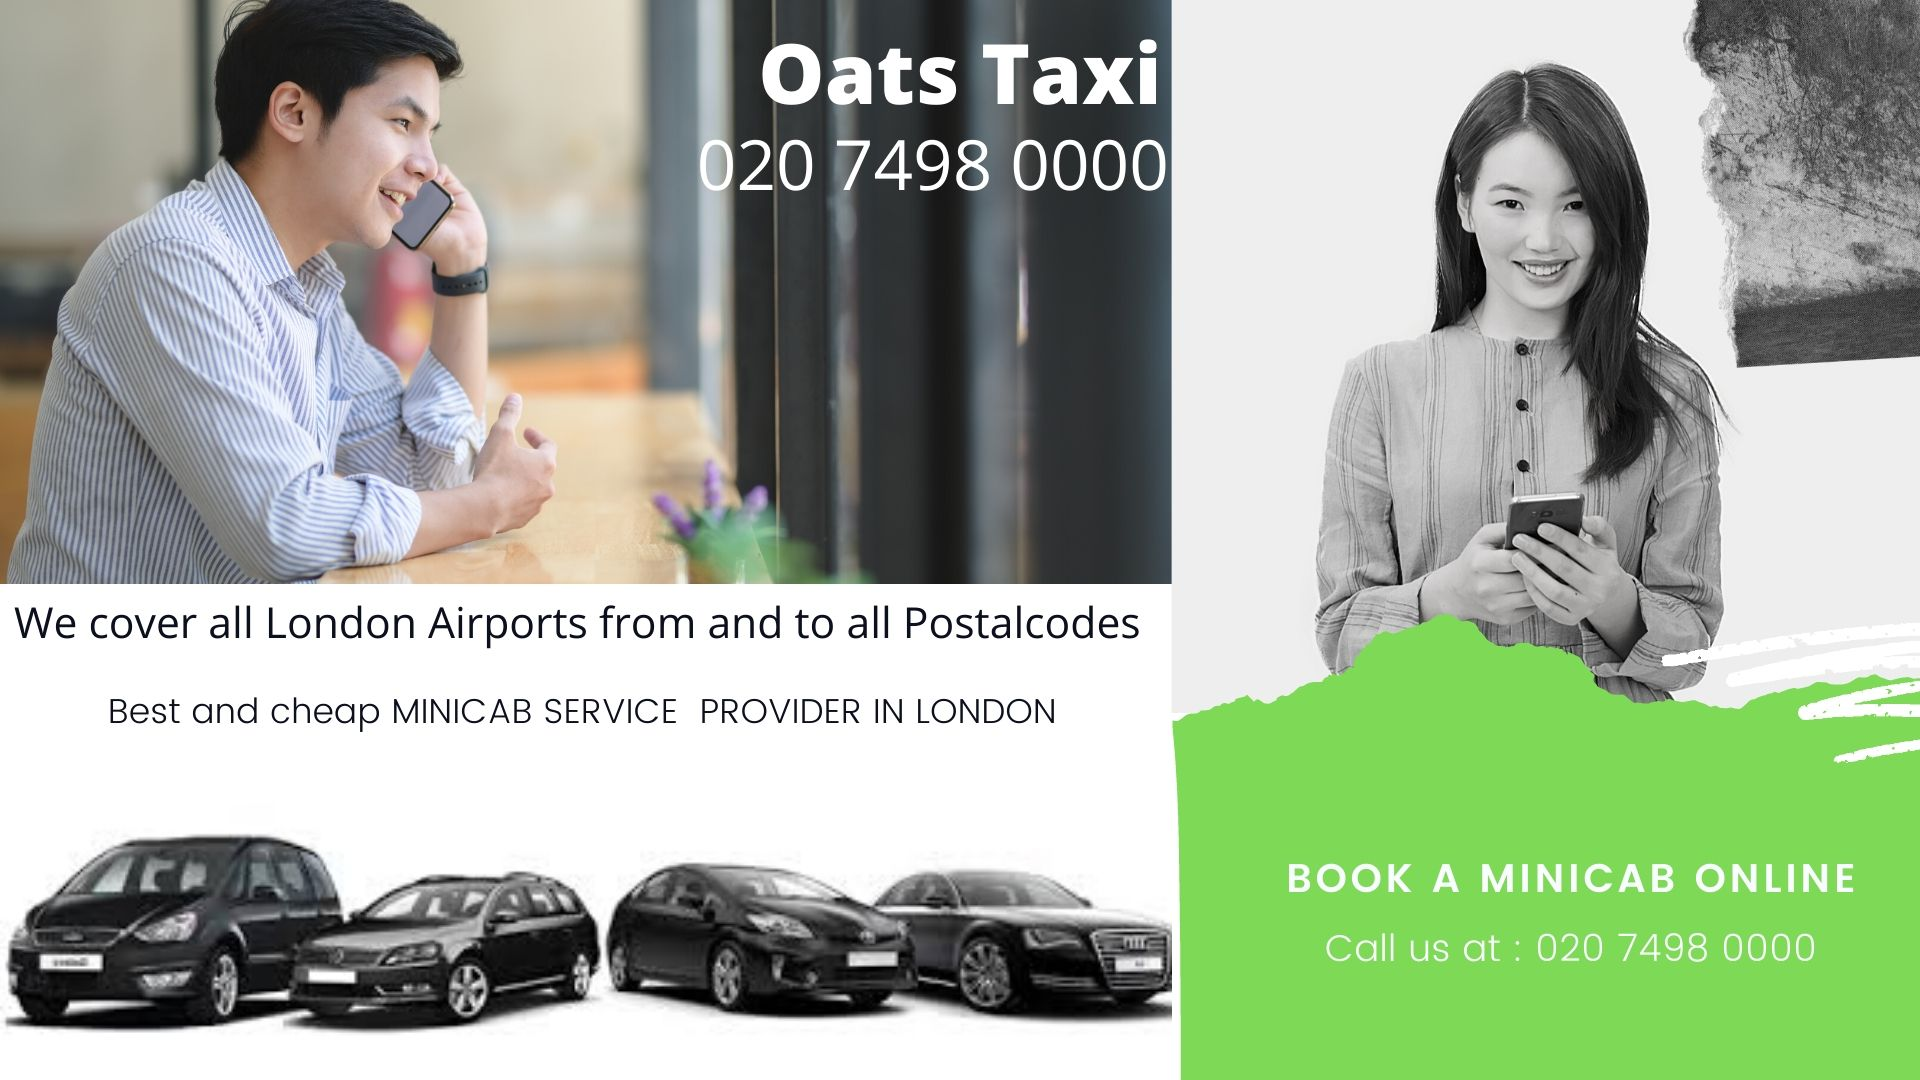 Minicab Near AMIES STREET, Battersea SW11, Minicab From Battersea SW11 To Gatwick Airport